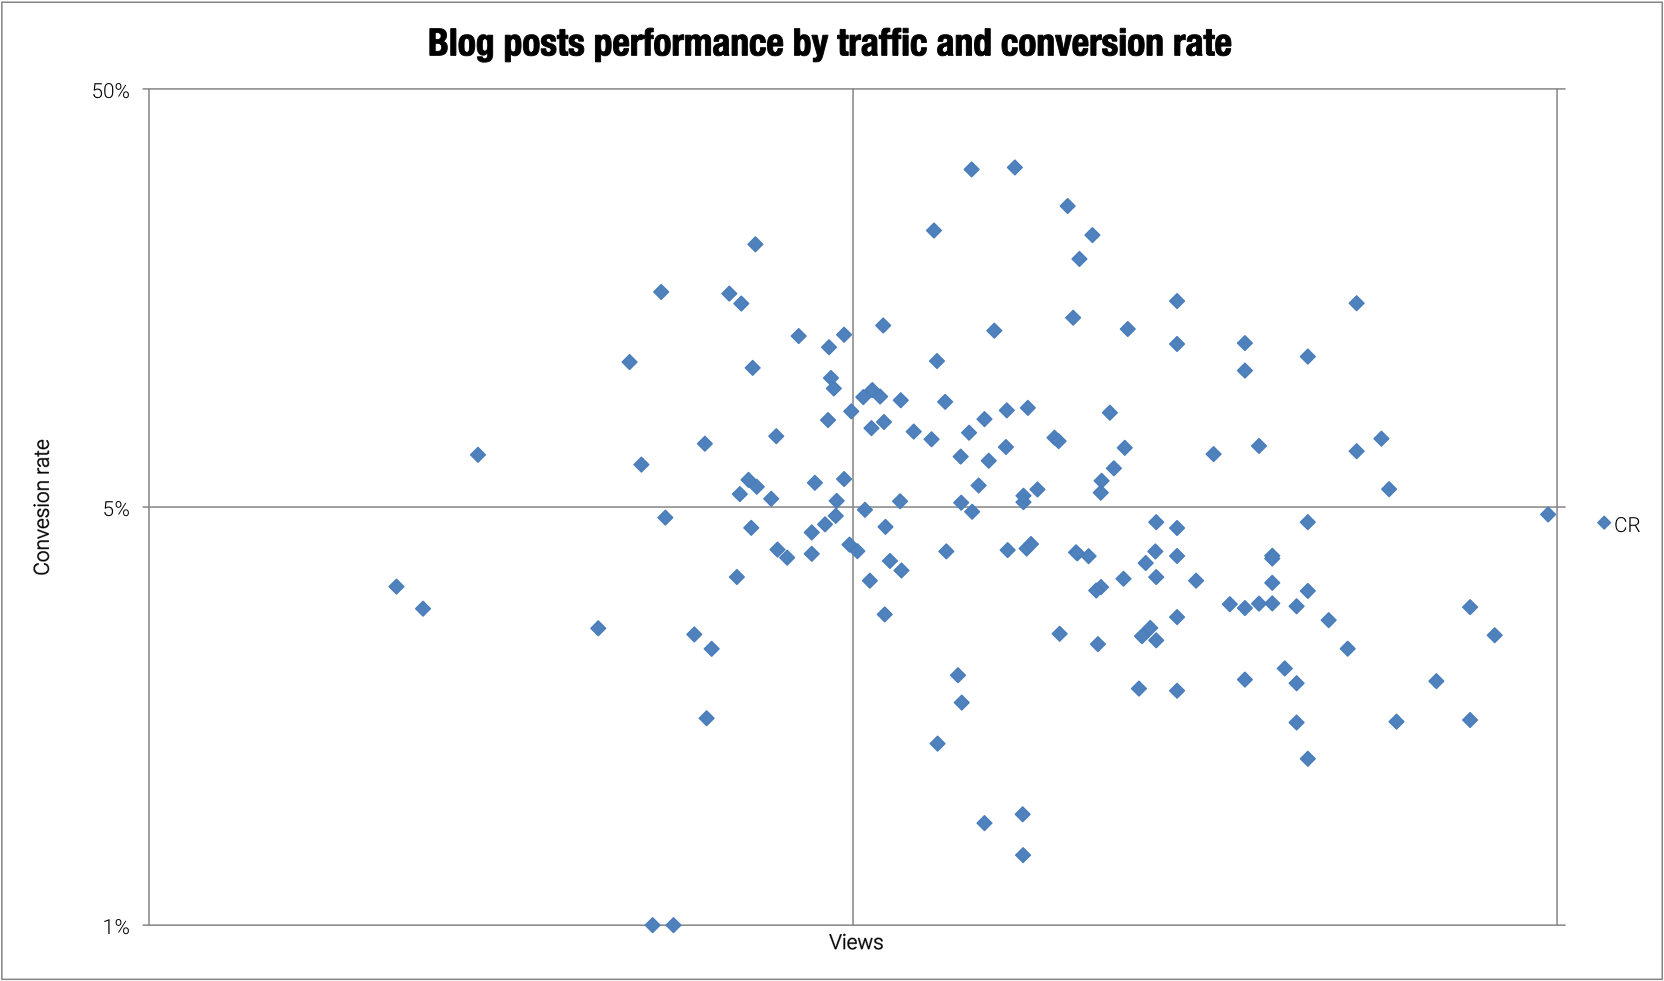 Blog posts performance by traffic and conversion rate